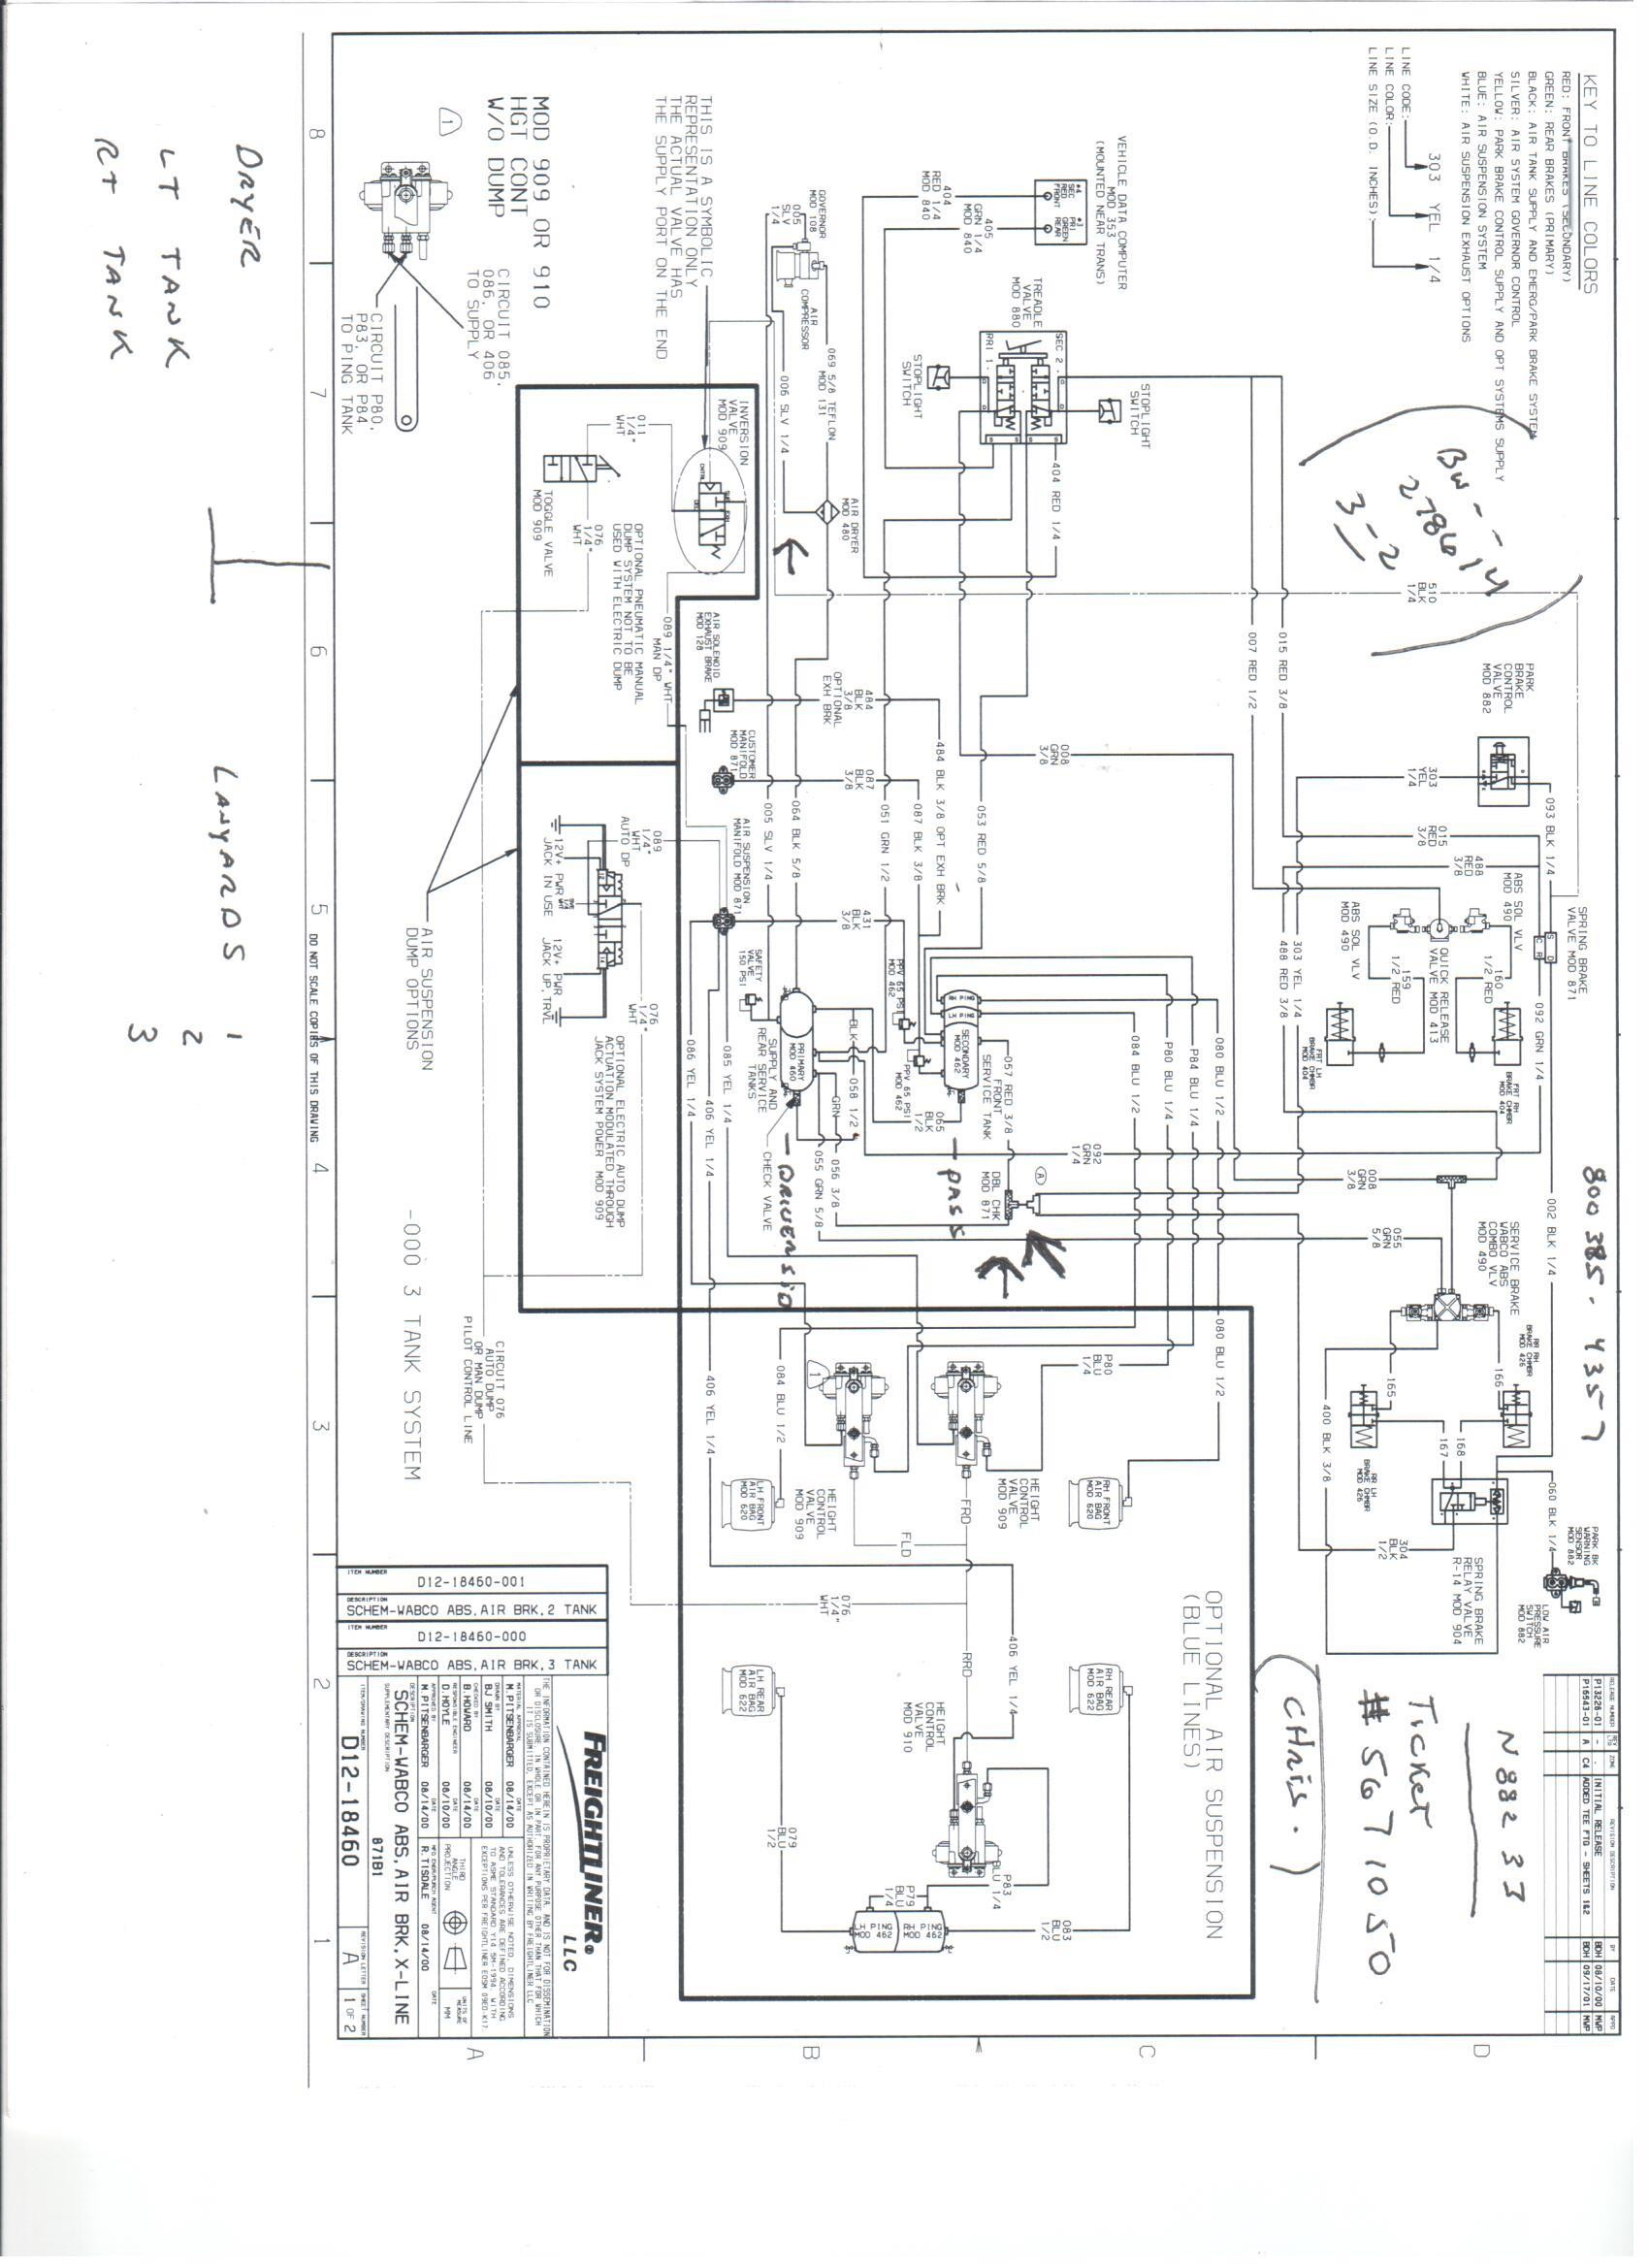 2012 Tiffin Wiring Diagram House Wiring Diagram Symbols \u2022 Motorhome  Replacement Windows Tiffin Motorhome Speaker Wiring Diagram